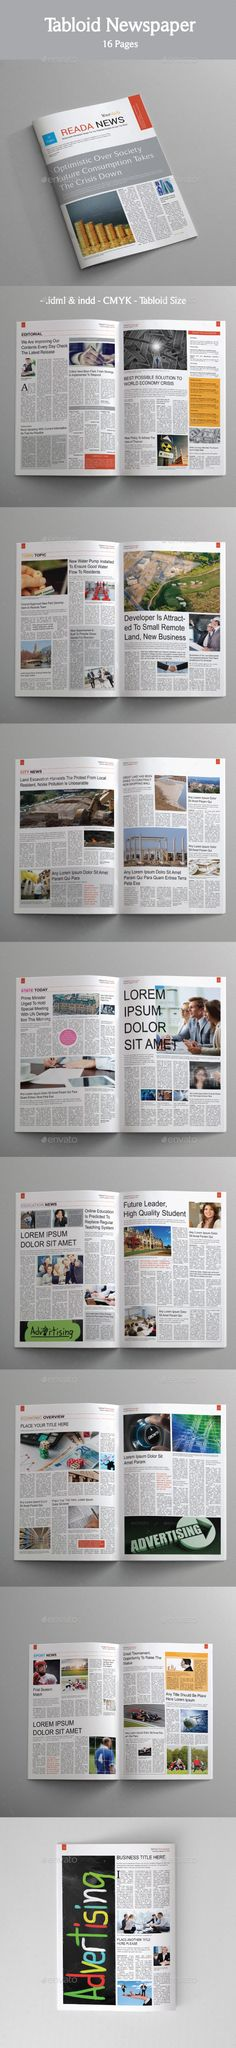 20 Page Newspaper Indesign Template Design Download